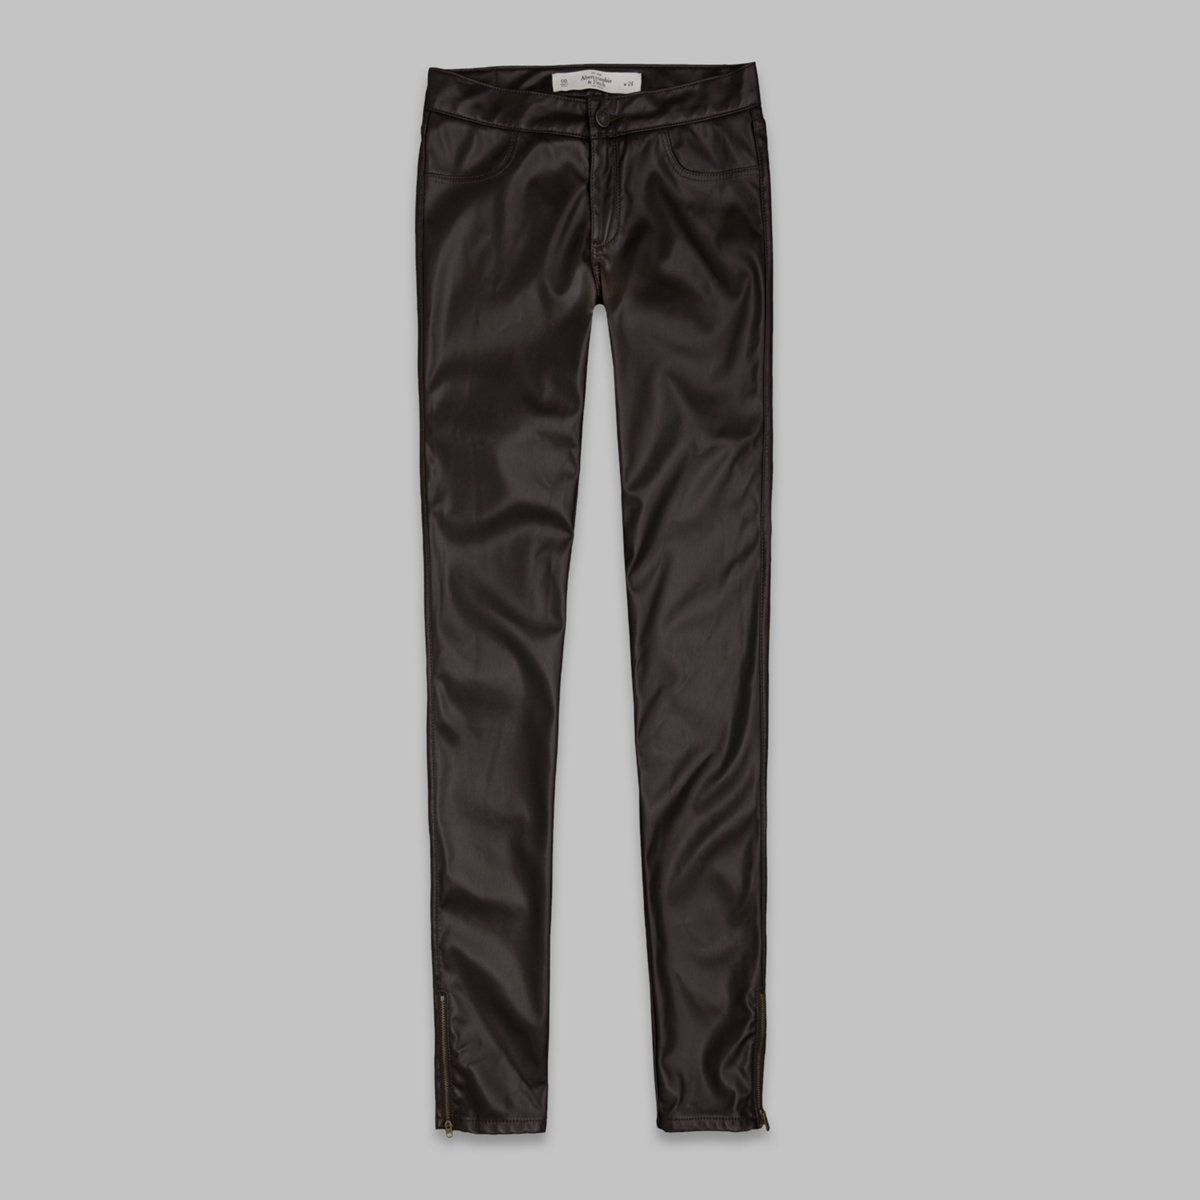 A&F Mid Rise Vegan Leather Jeggings